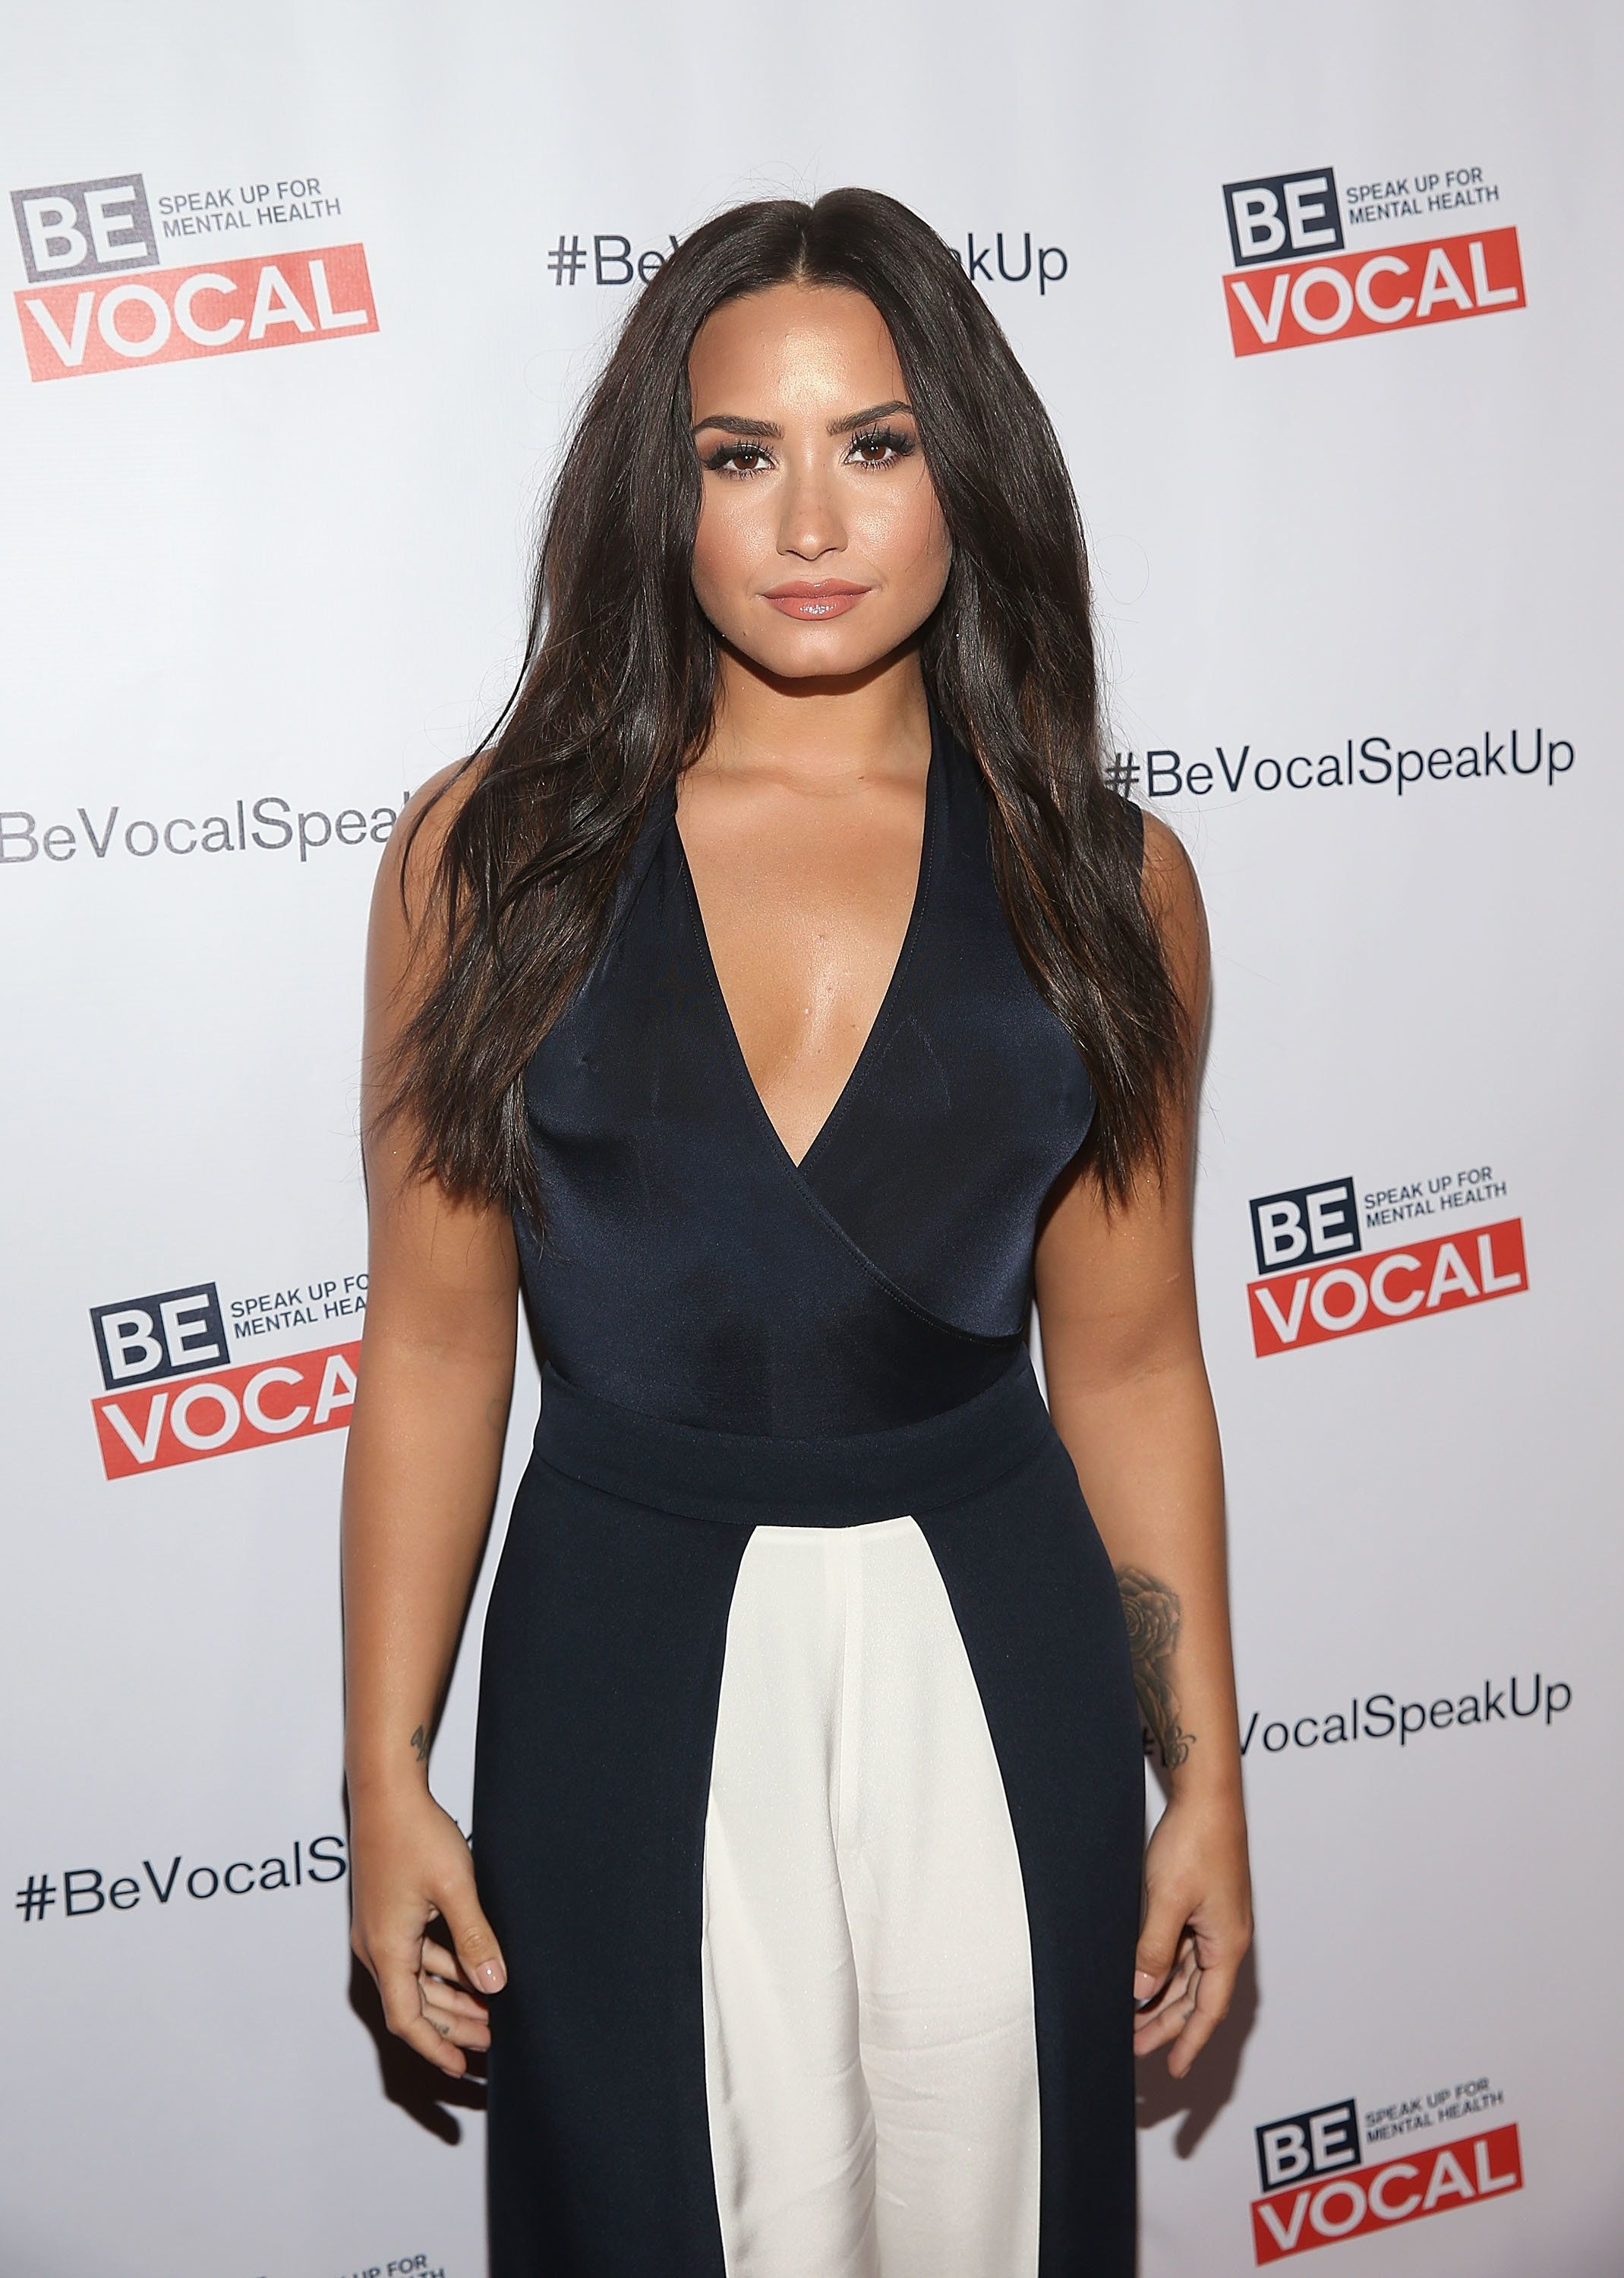 LOS ANGELES, CA - FEBRUARY 22:  Demi Lovato arrives at the premiere of Beyond Silence on February 22, 2017 in Los Angeles, California. Lovato served as the executive producer on the film. Her participation is part of the Be Vocal: Speak Up for Mental Health initiative.  (Photo by Jesse Grant/Getty Images for Be Vocal)